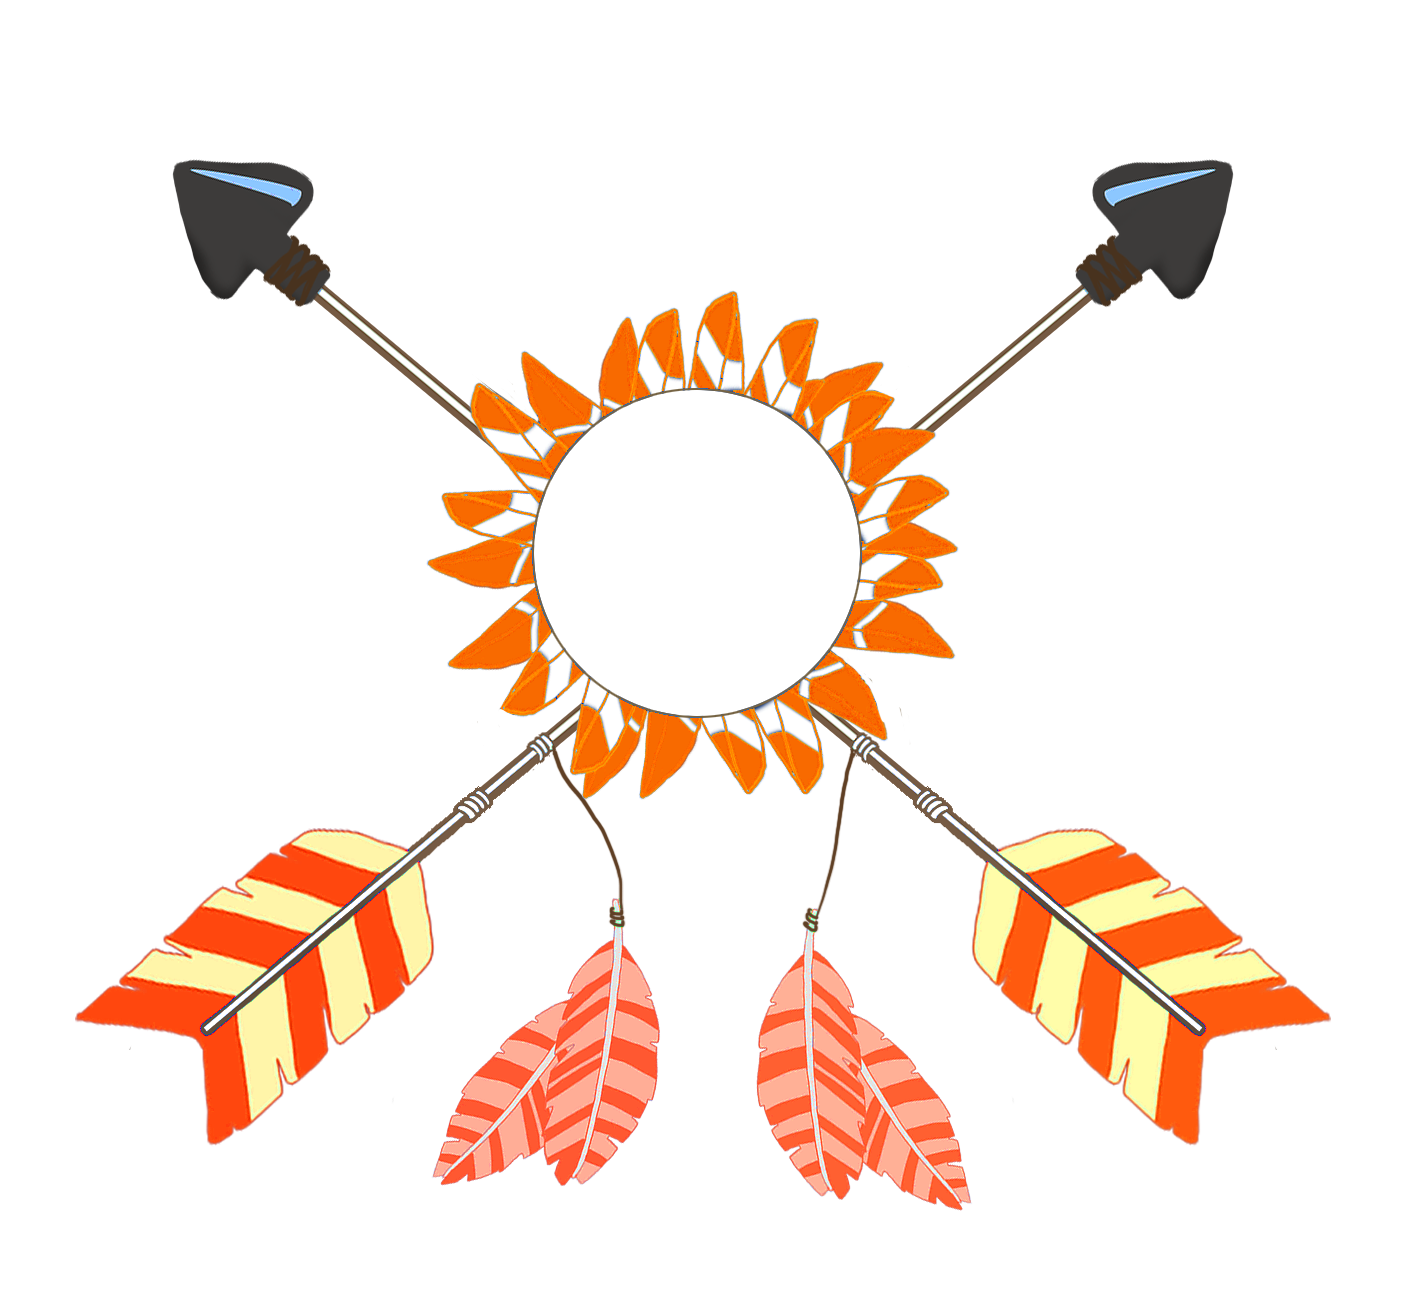 tribal crossed arrows graphic